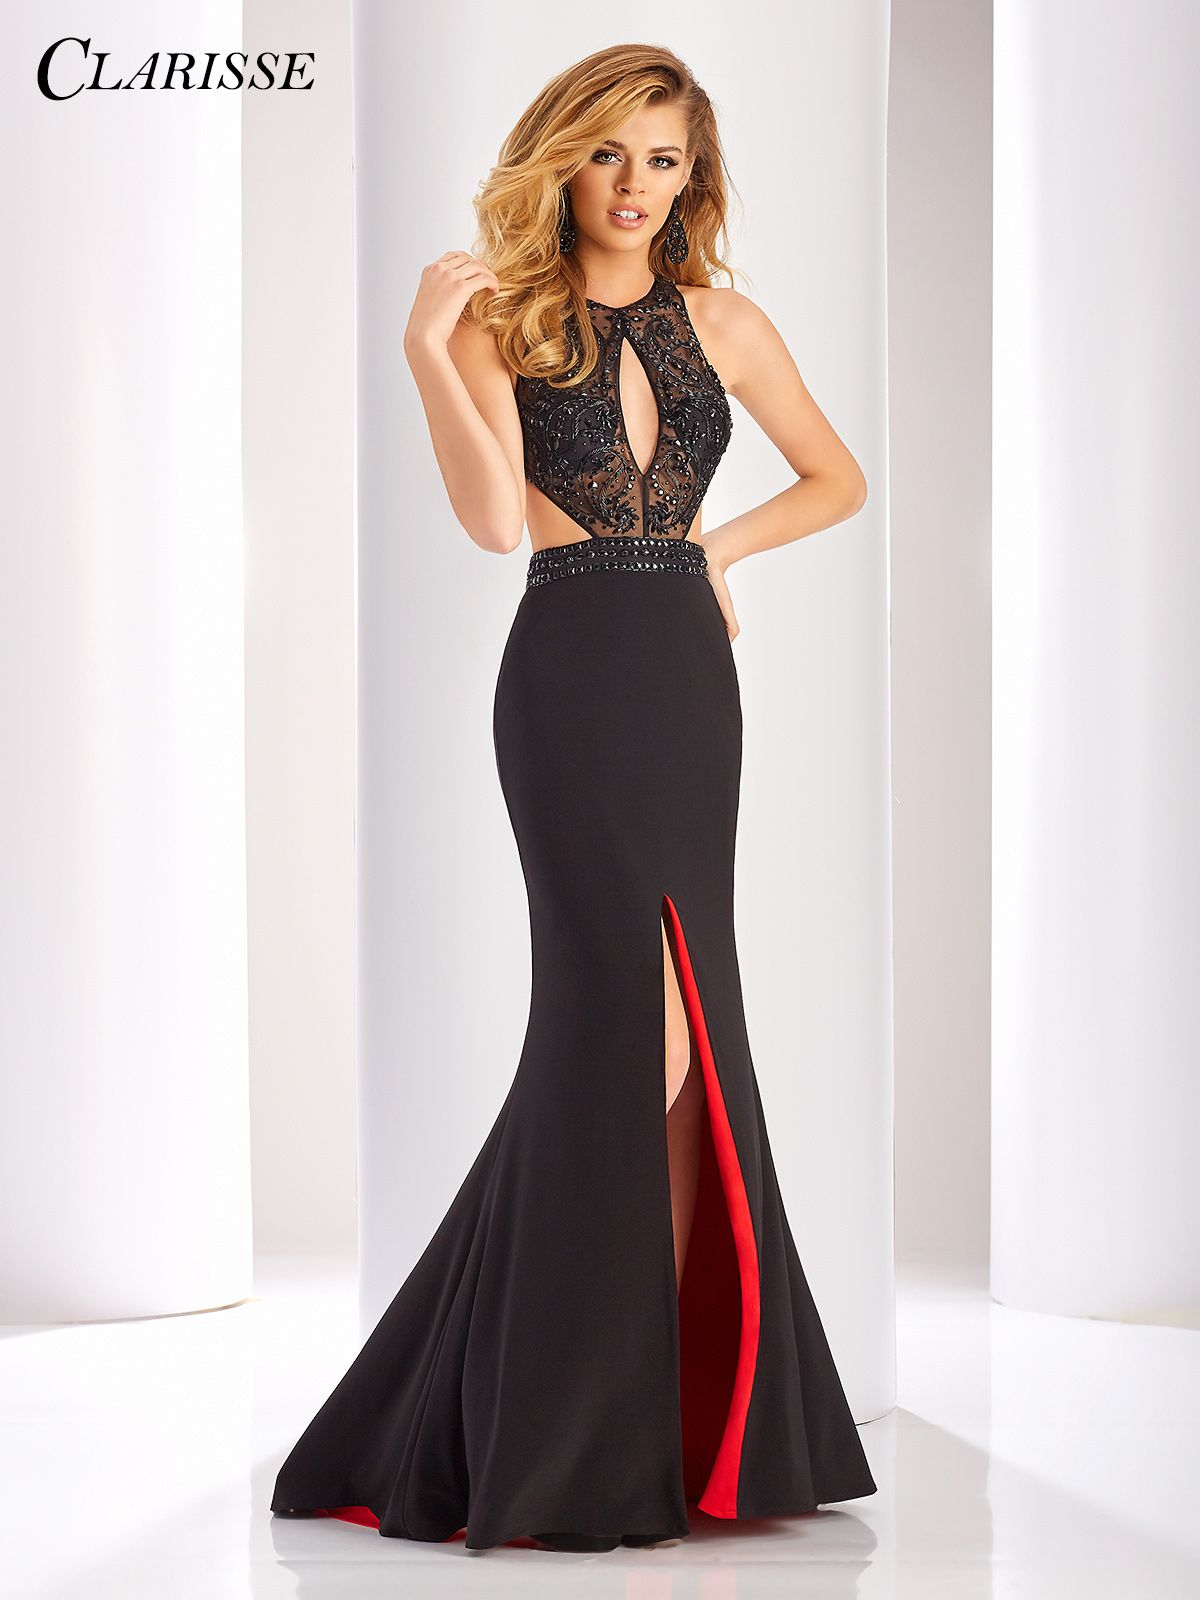 Clarisse Black and Red Prom Dress 3098 | Long fitted prom dresses ...